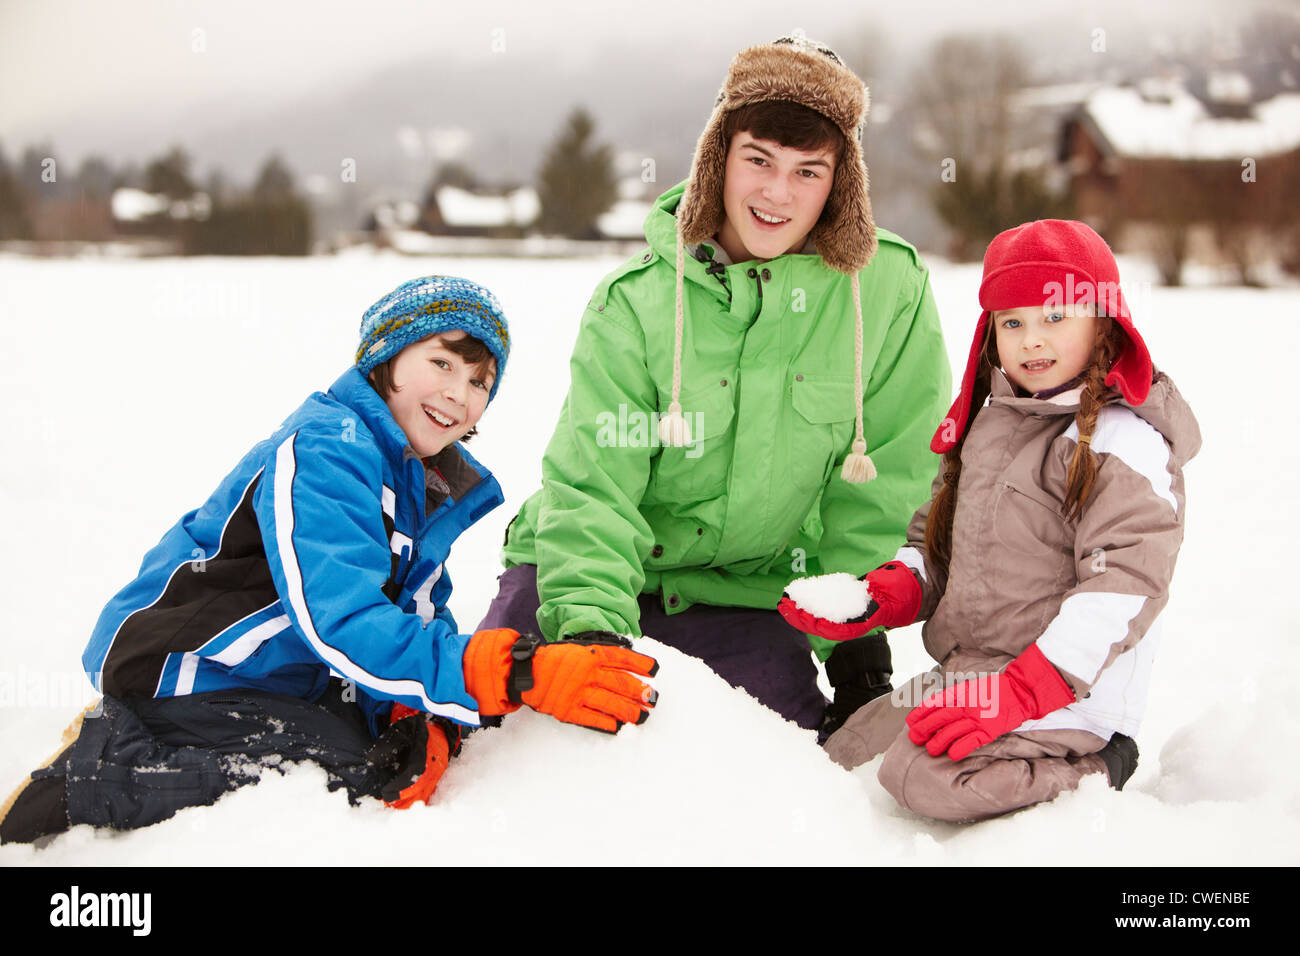 Group Of Children Building Snowman Wearing Woolly Hats - Stock Image